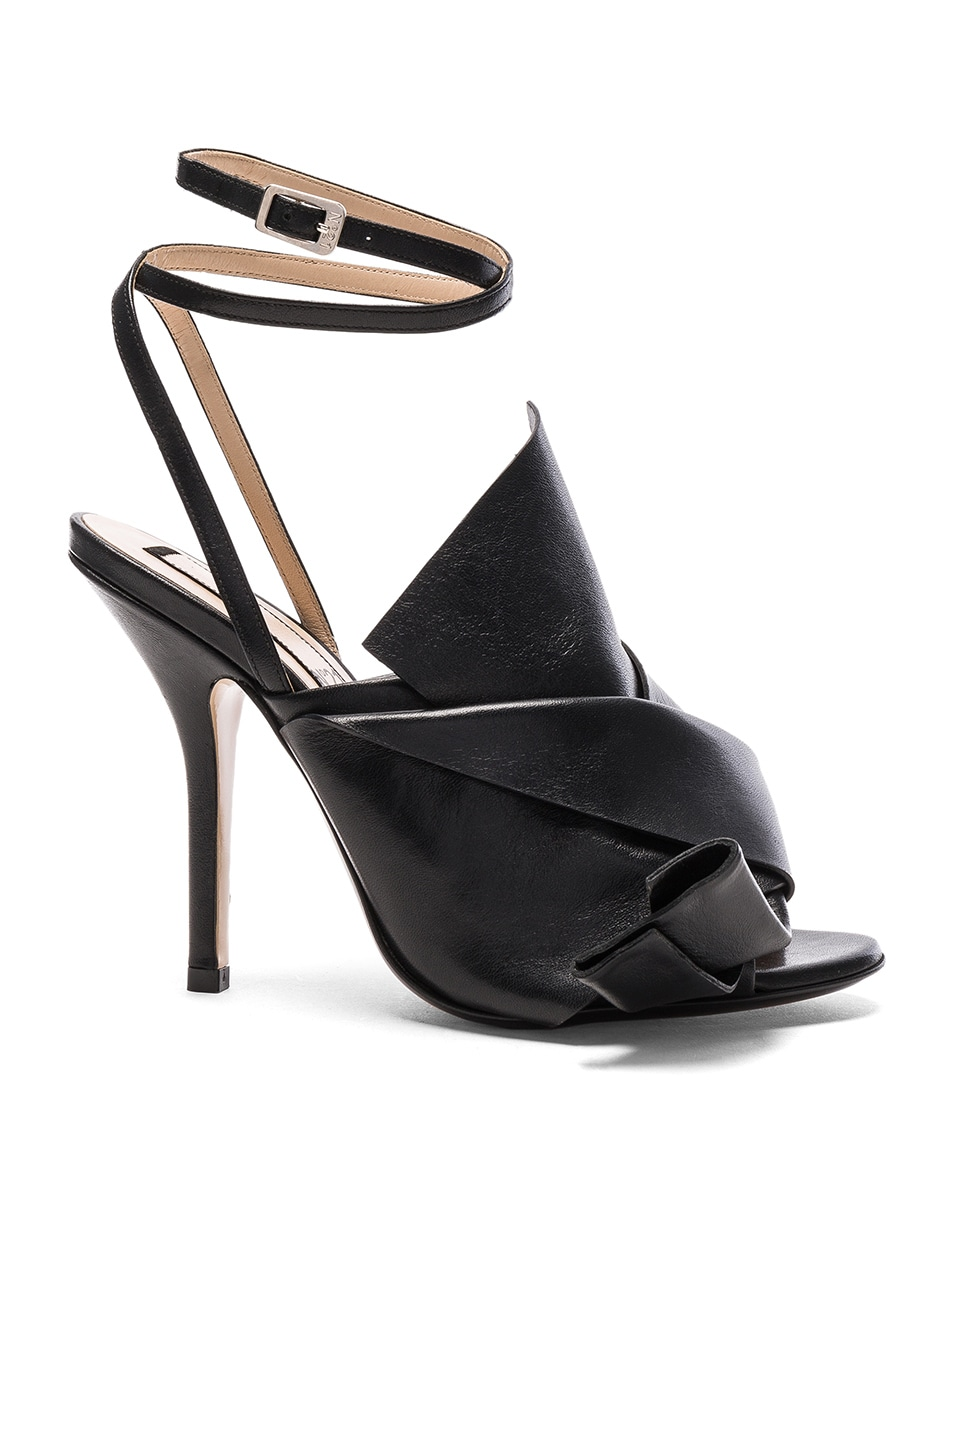 Image 1 of No. 21 Bow Leather Heels in Black